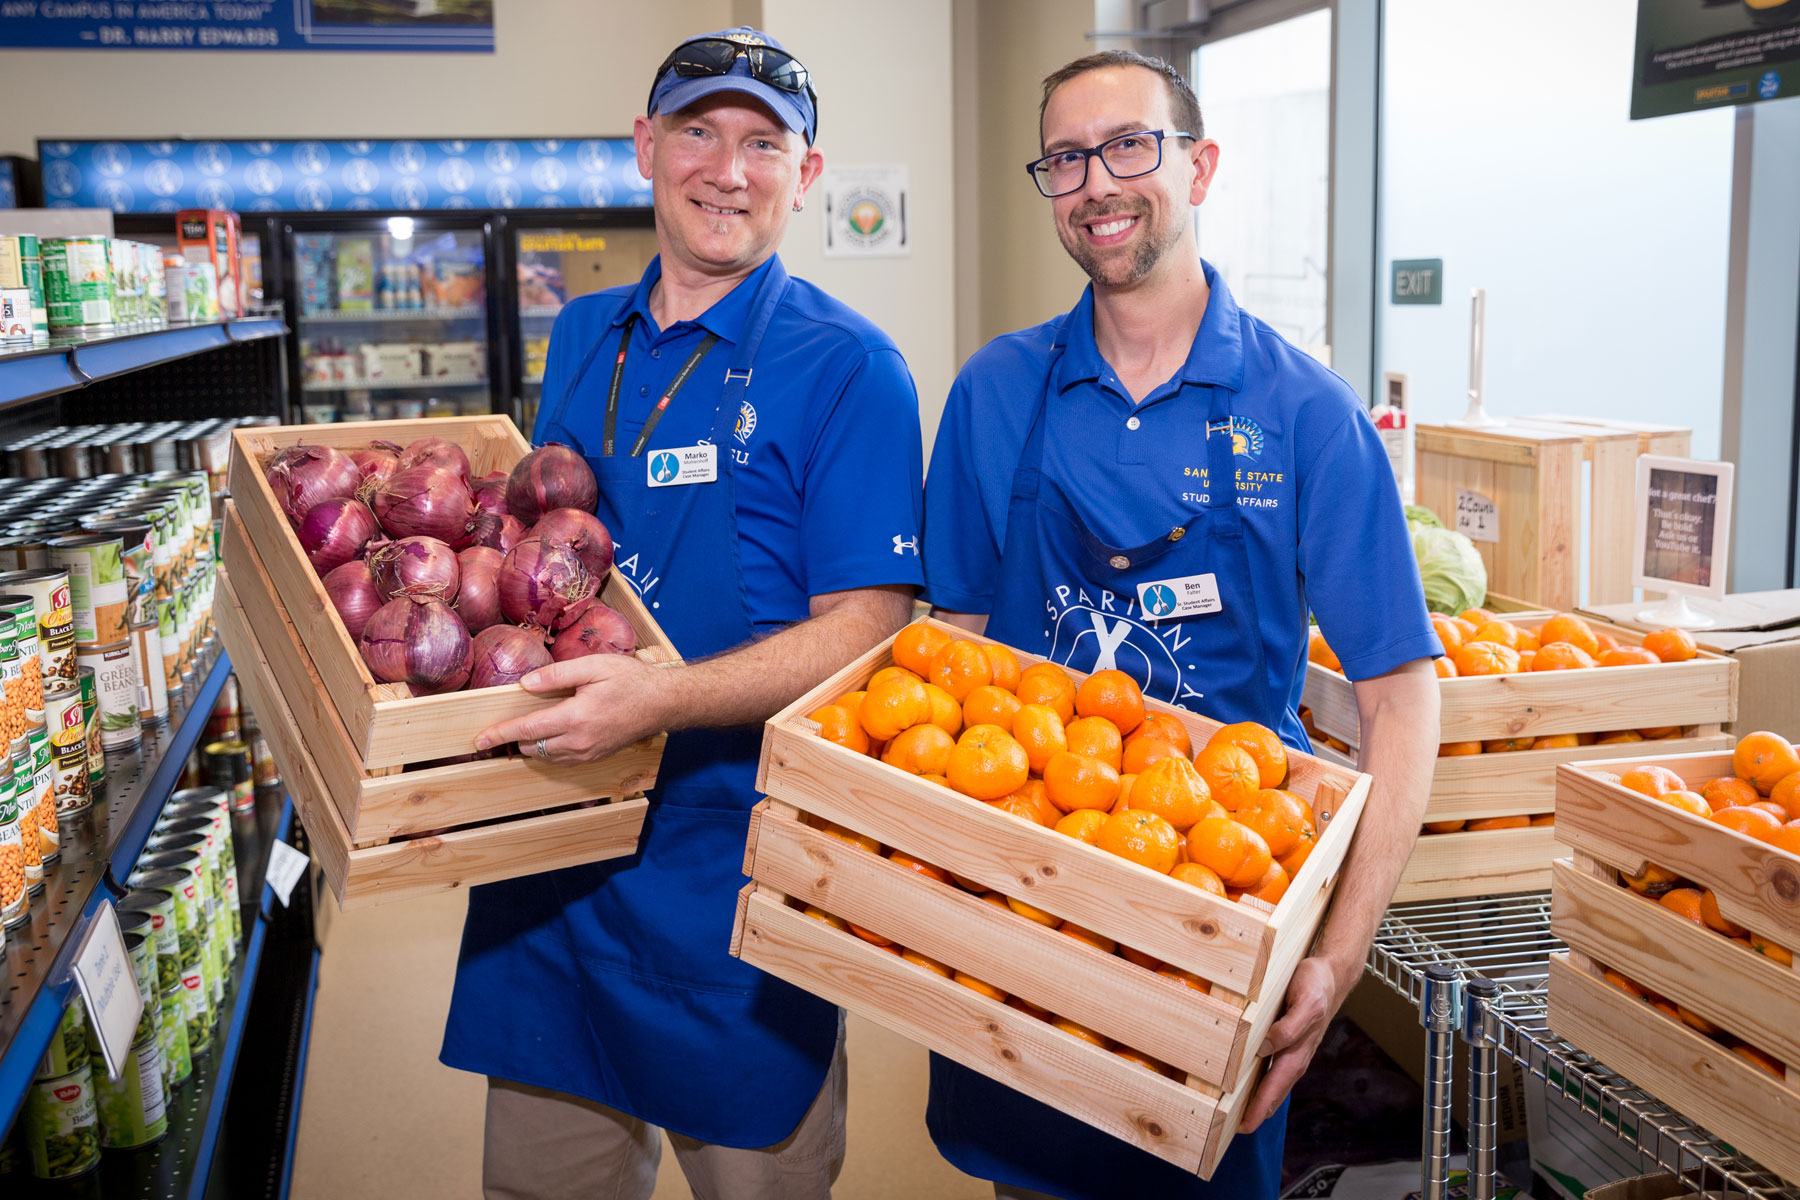 SJSU Cares staff holds fresh produce offerings from the Spartan Food Pantry.